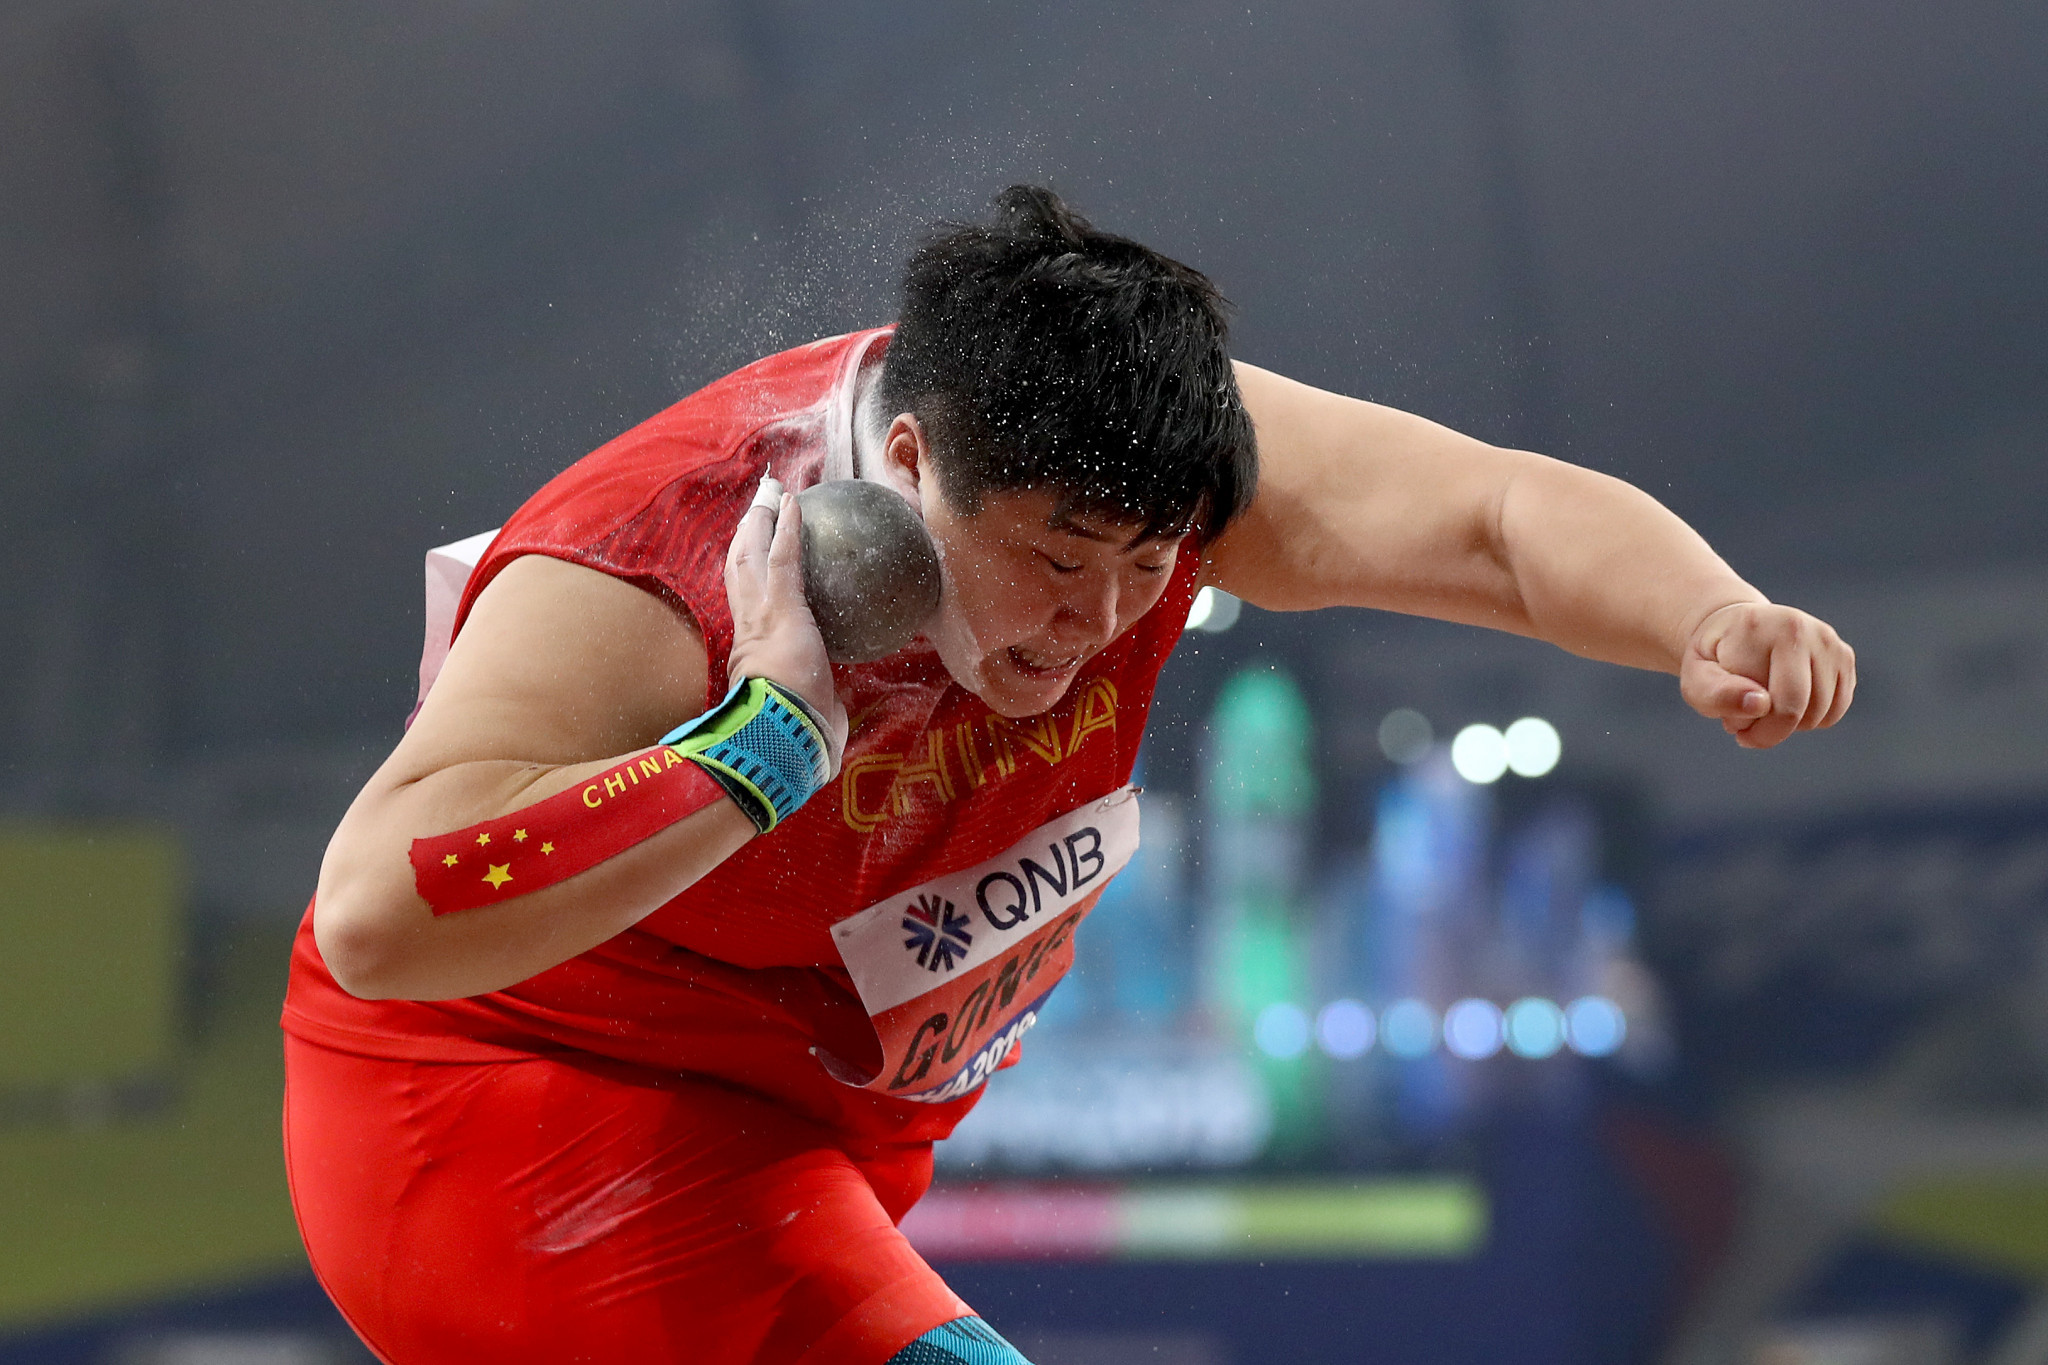 Gong aiming for Olympic shot put gold despite postponement of Tokyo 2020